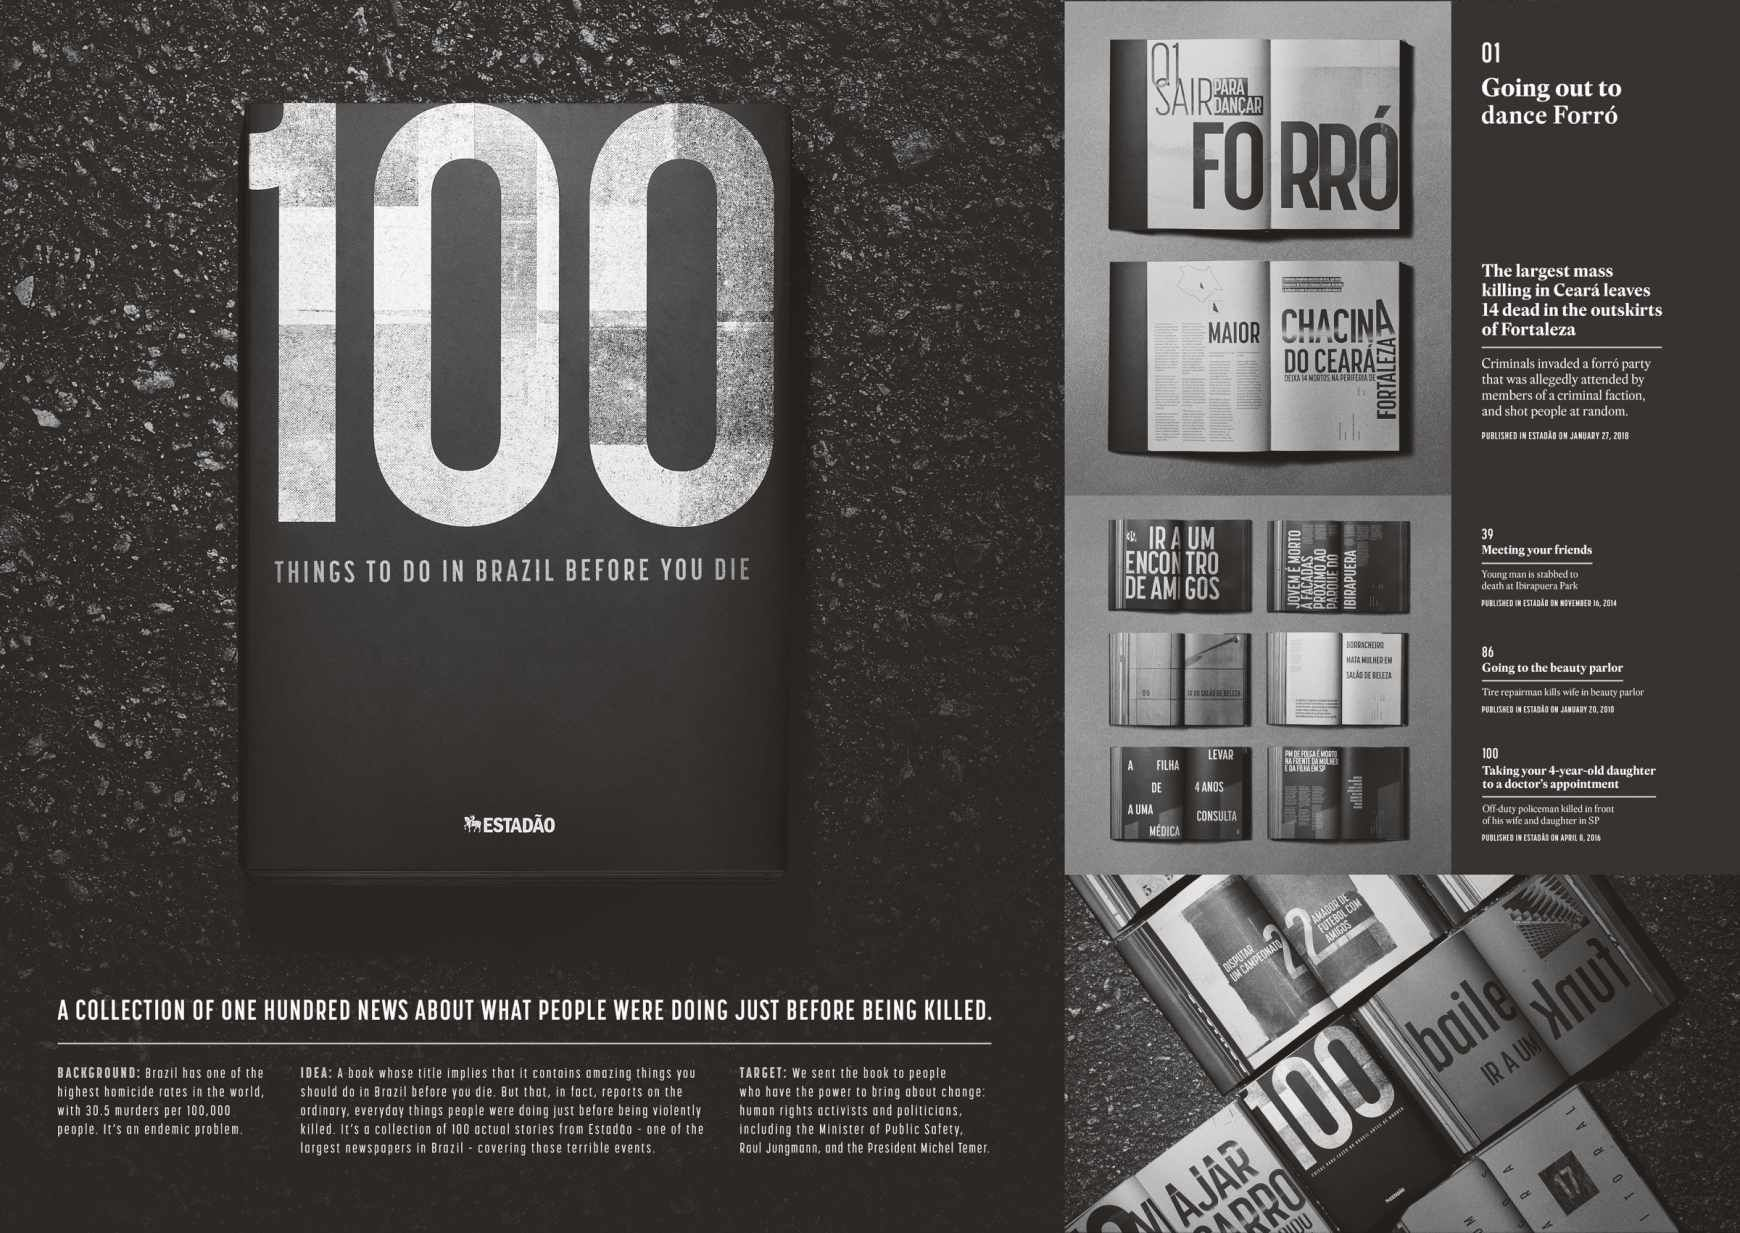 Estadao Print Ad 100 Things To Do In Brazil Before You Die